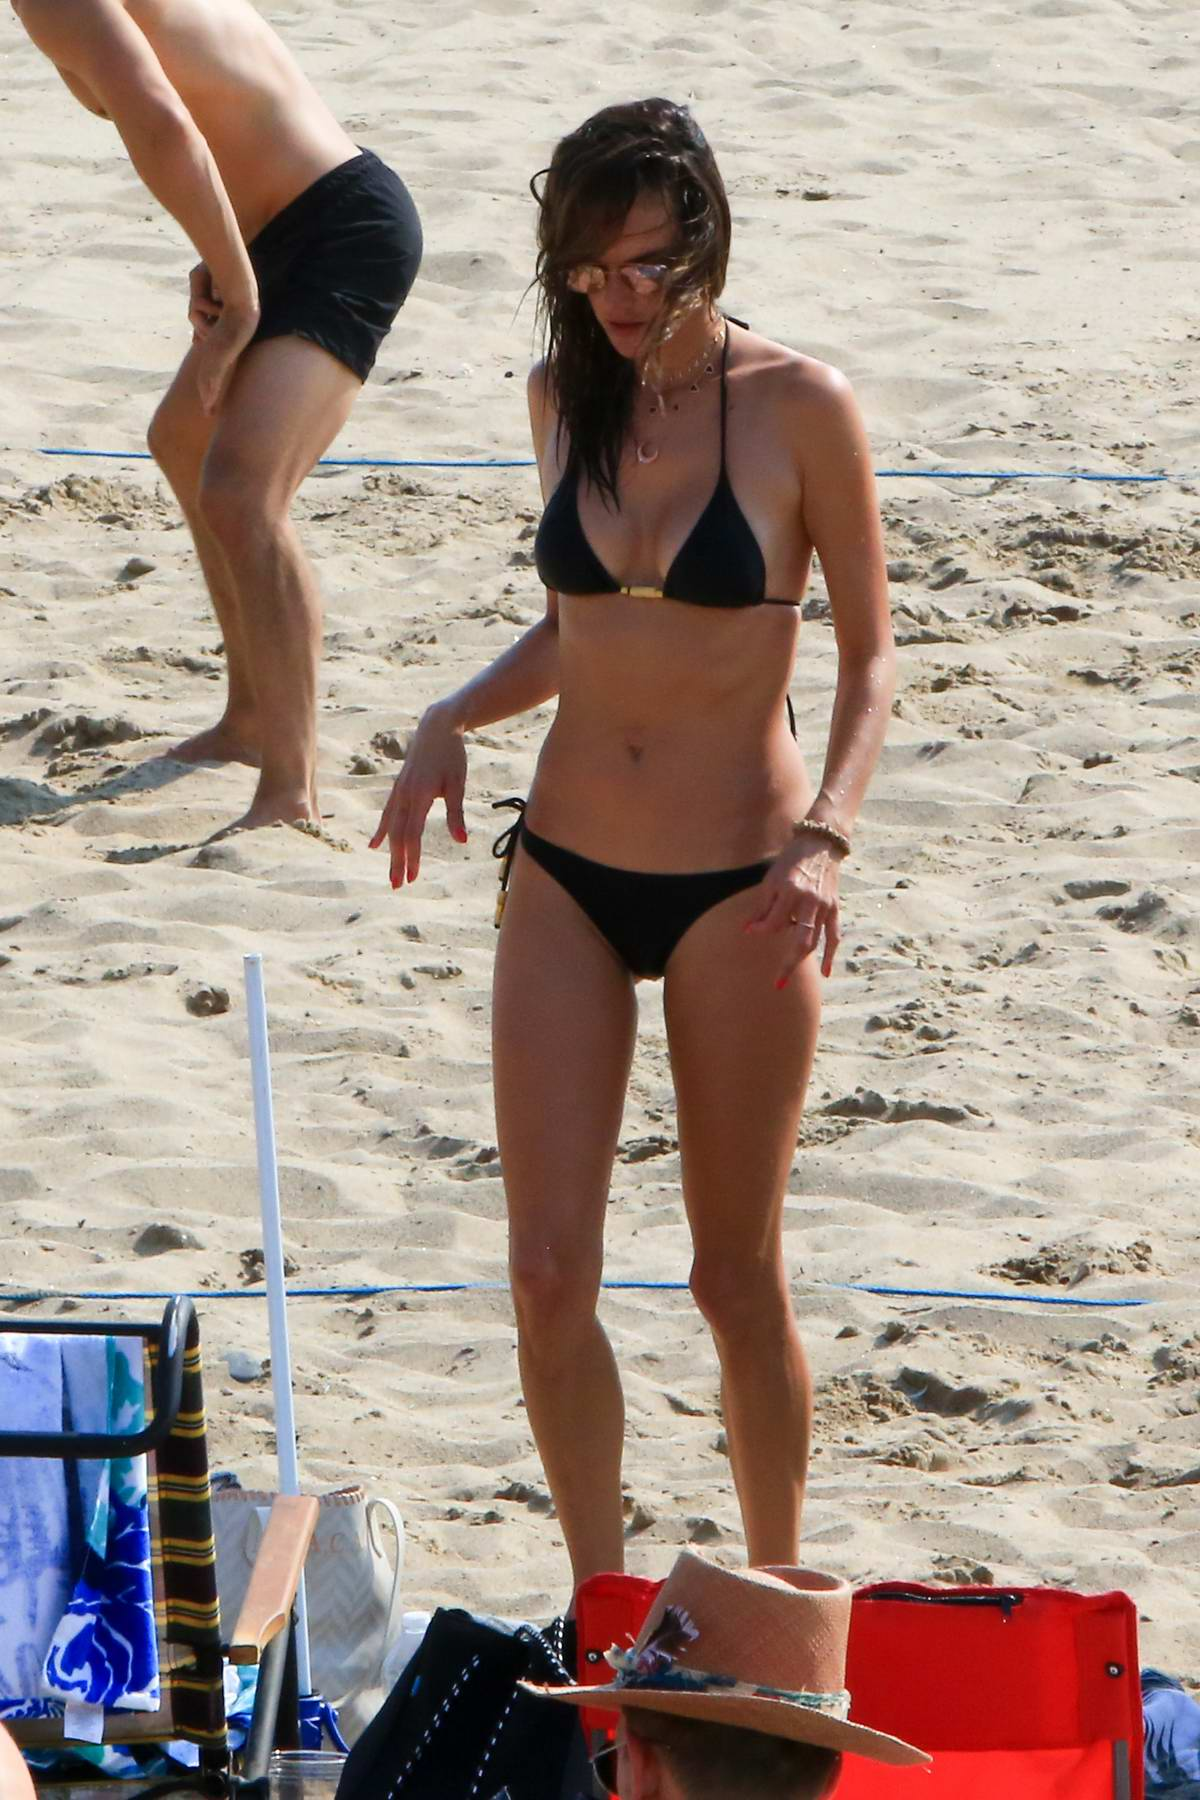 Alessandra Ambrosio wore a black bikini as hang out with her friends at the beach in Los Angeles